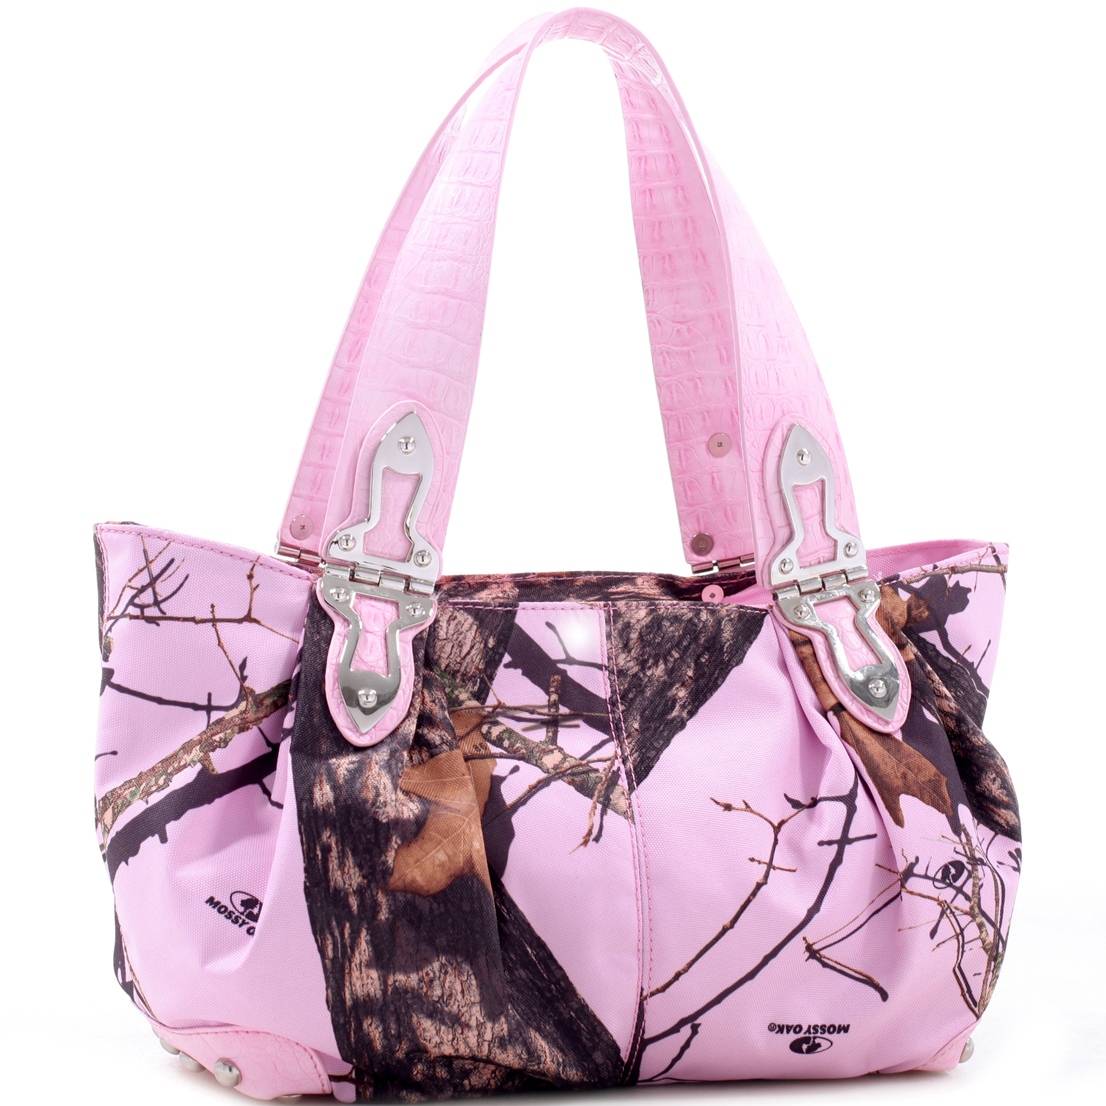 Camouflage shoulder bag with hinge handles & croco trim - camouflage/ coffee